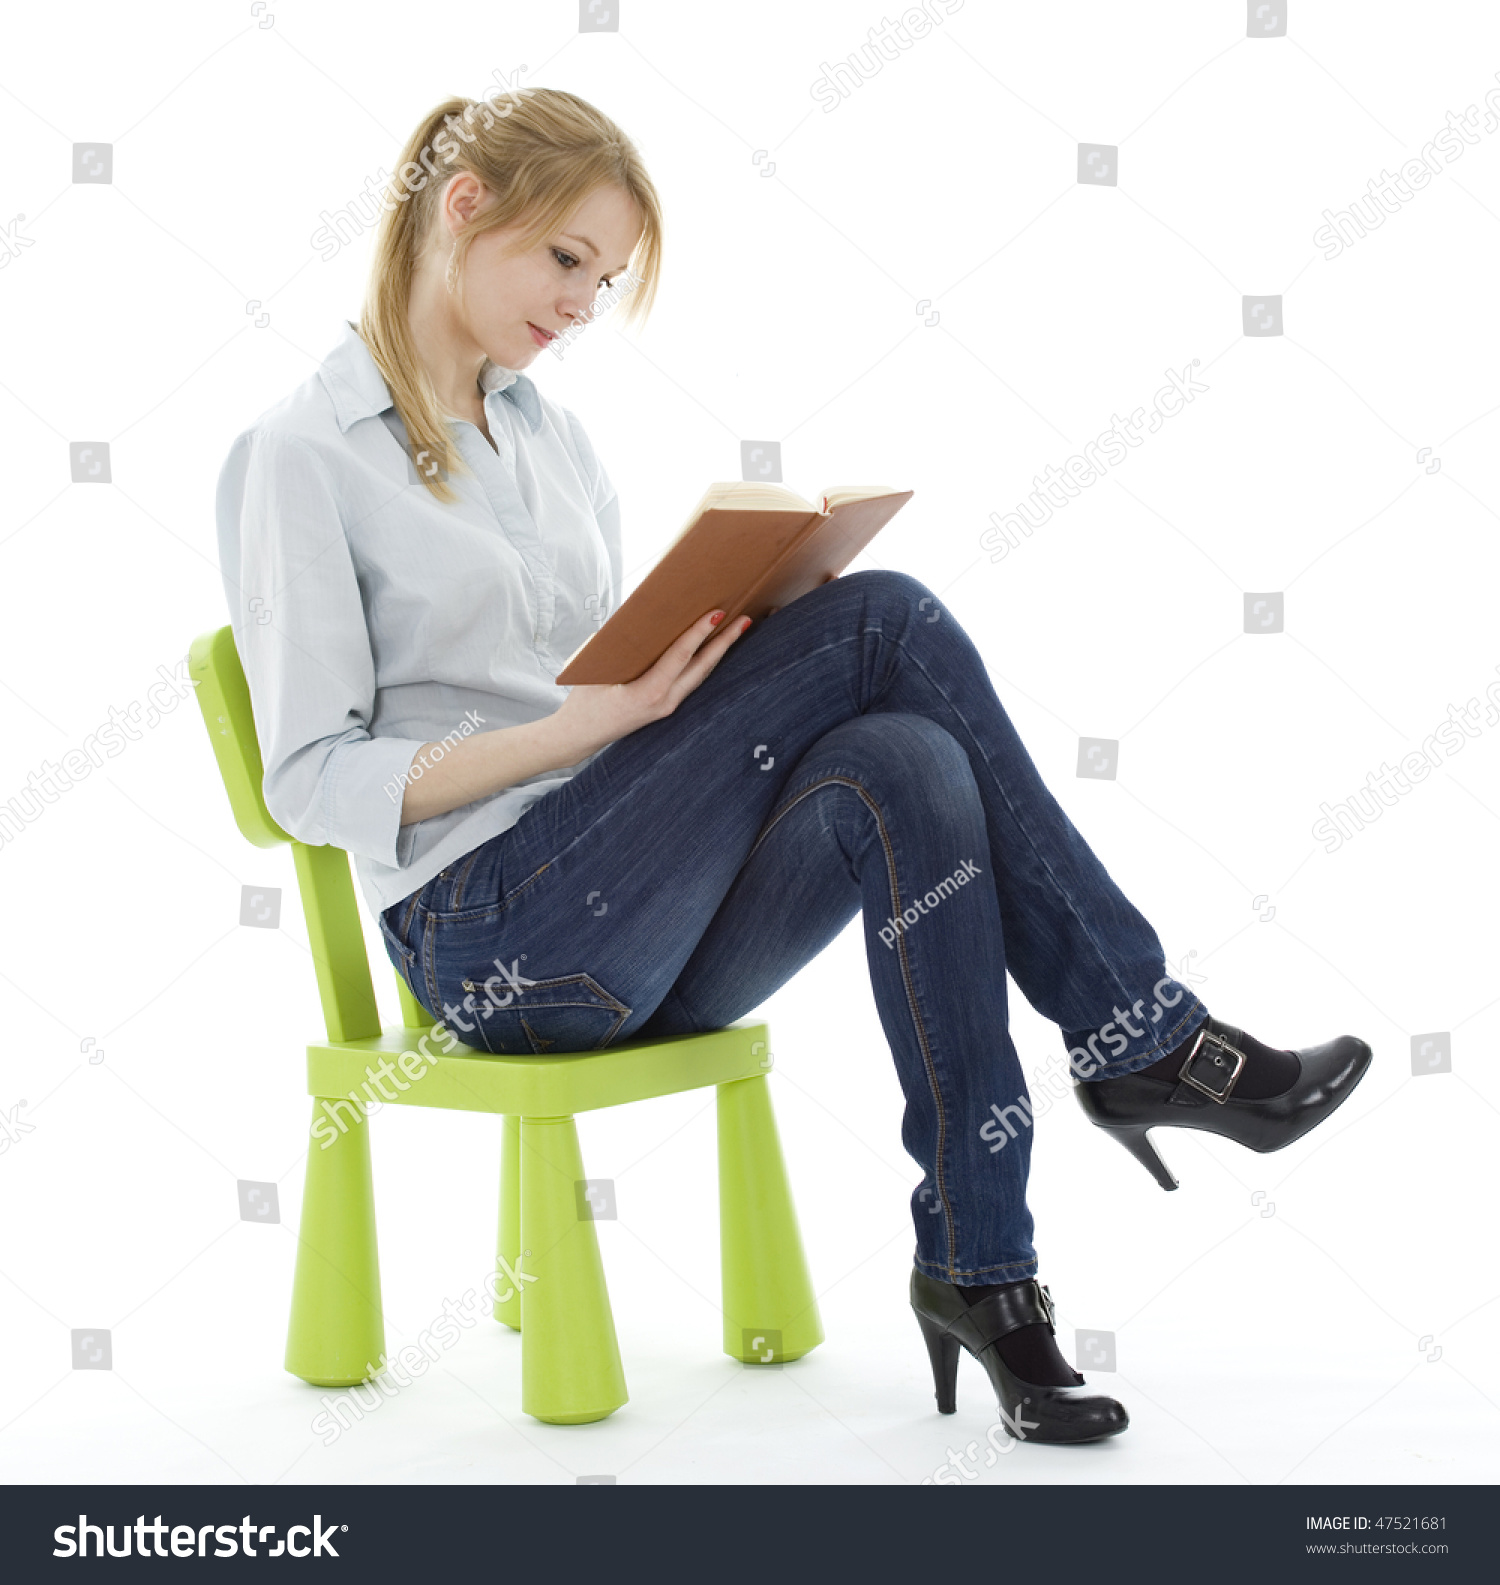 Sitting on green childs chair young stock photo 47521681 for Sitting chairs